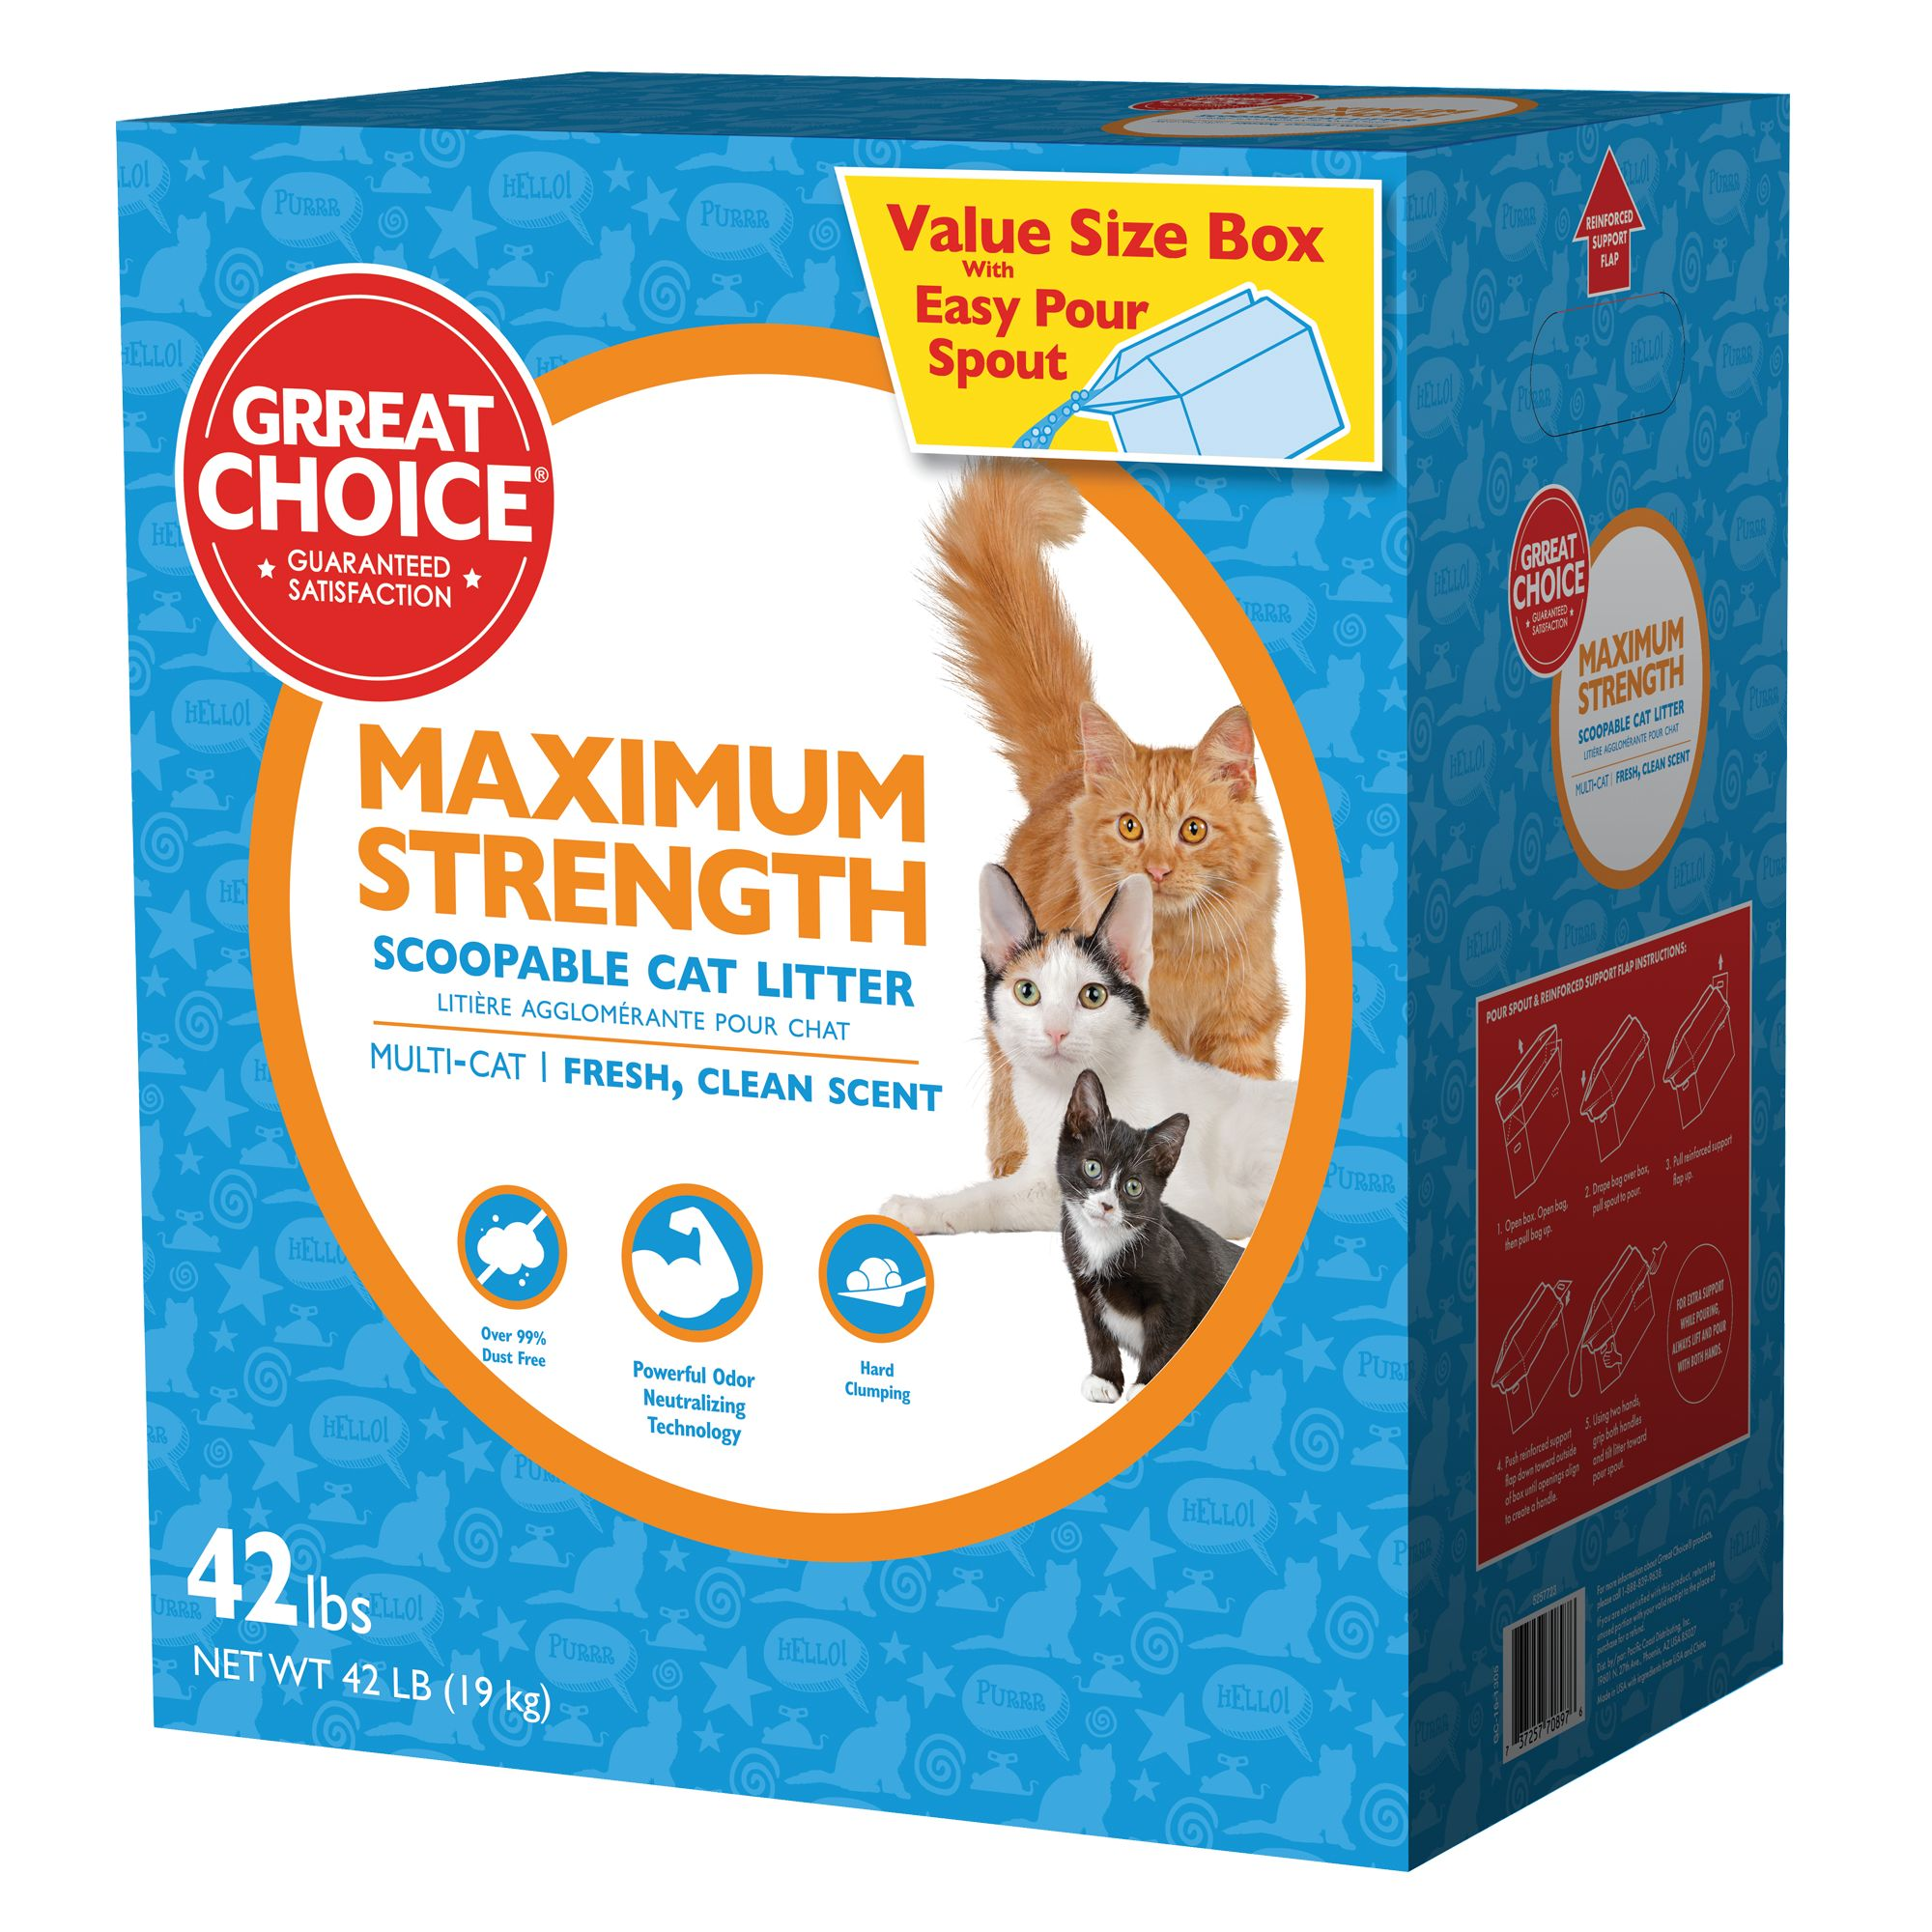 Grreat Choice Maximum Strength Cat Litter - Scoopable, Multi-Cat, Fresh Scent size: 42 Lb 5257723